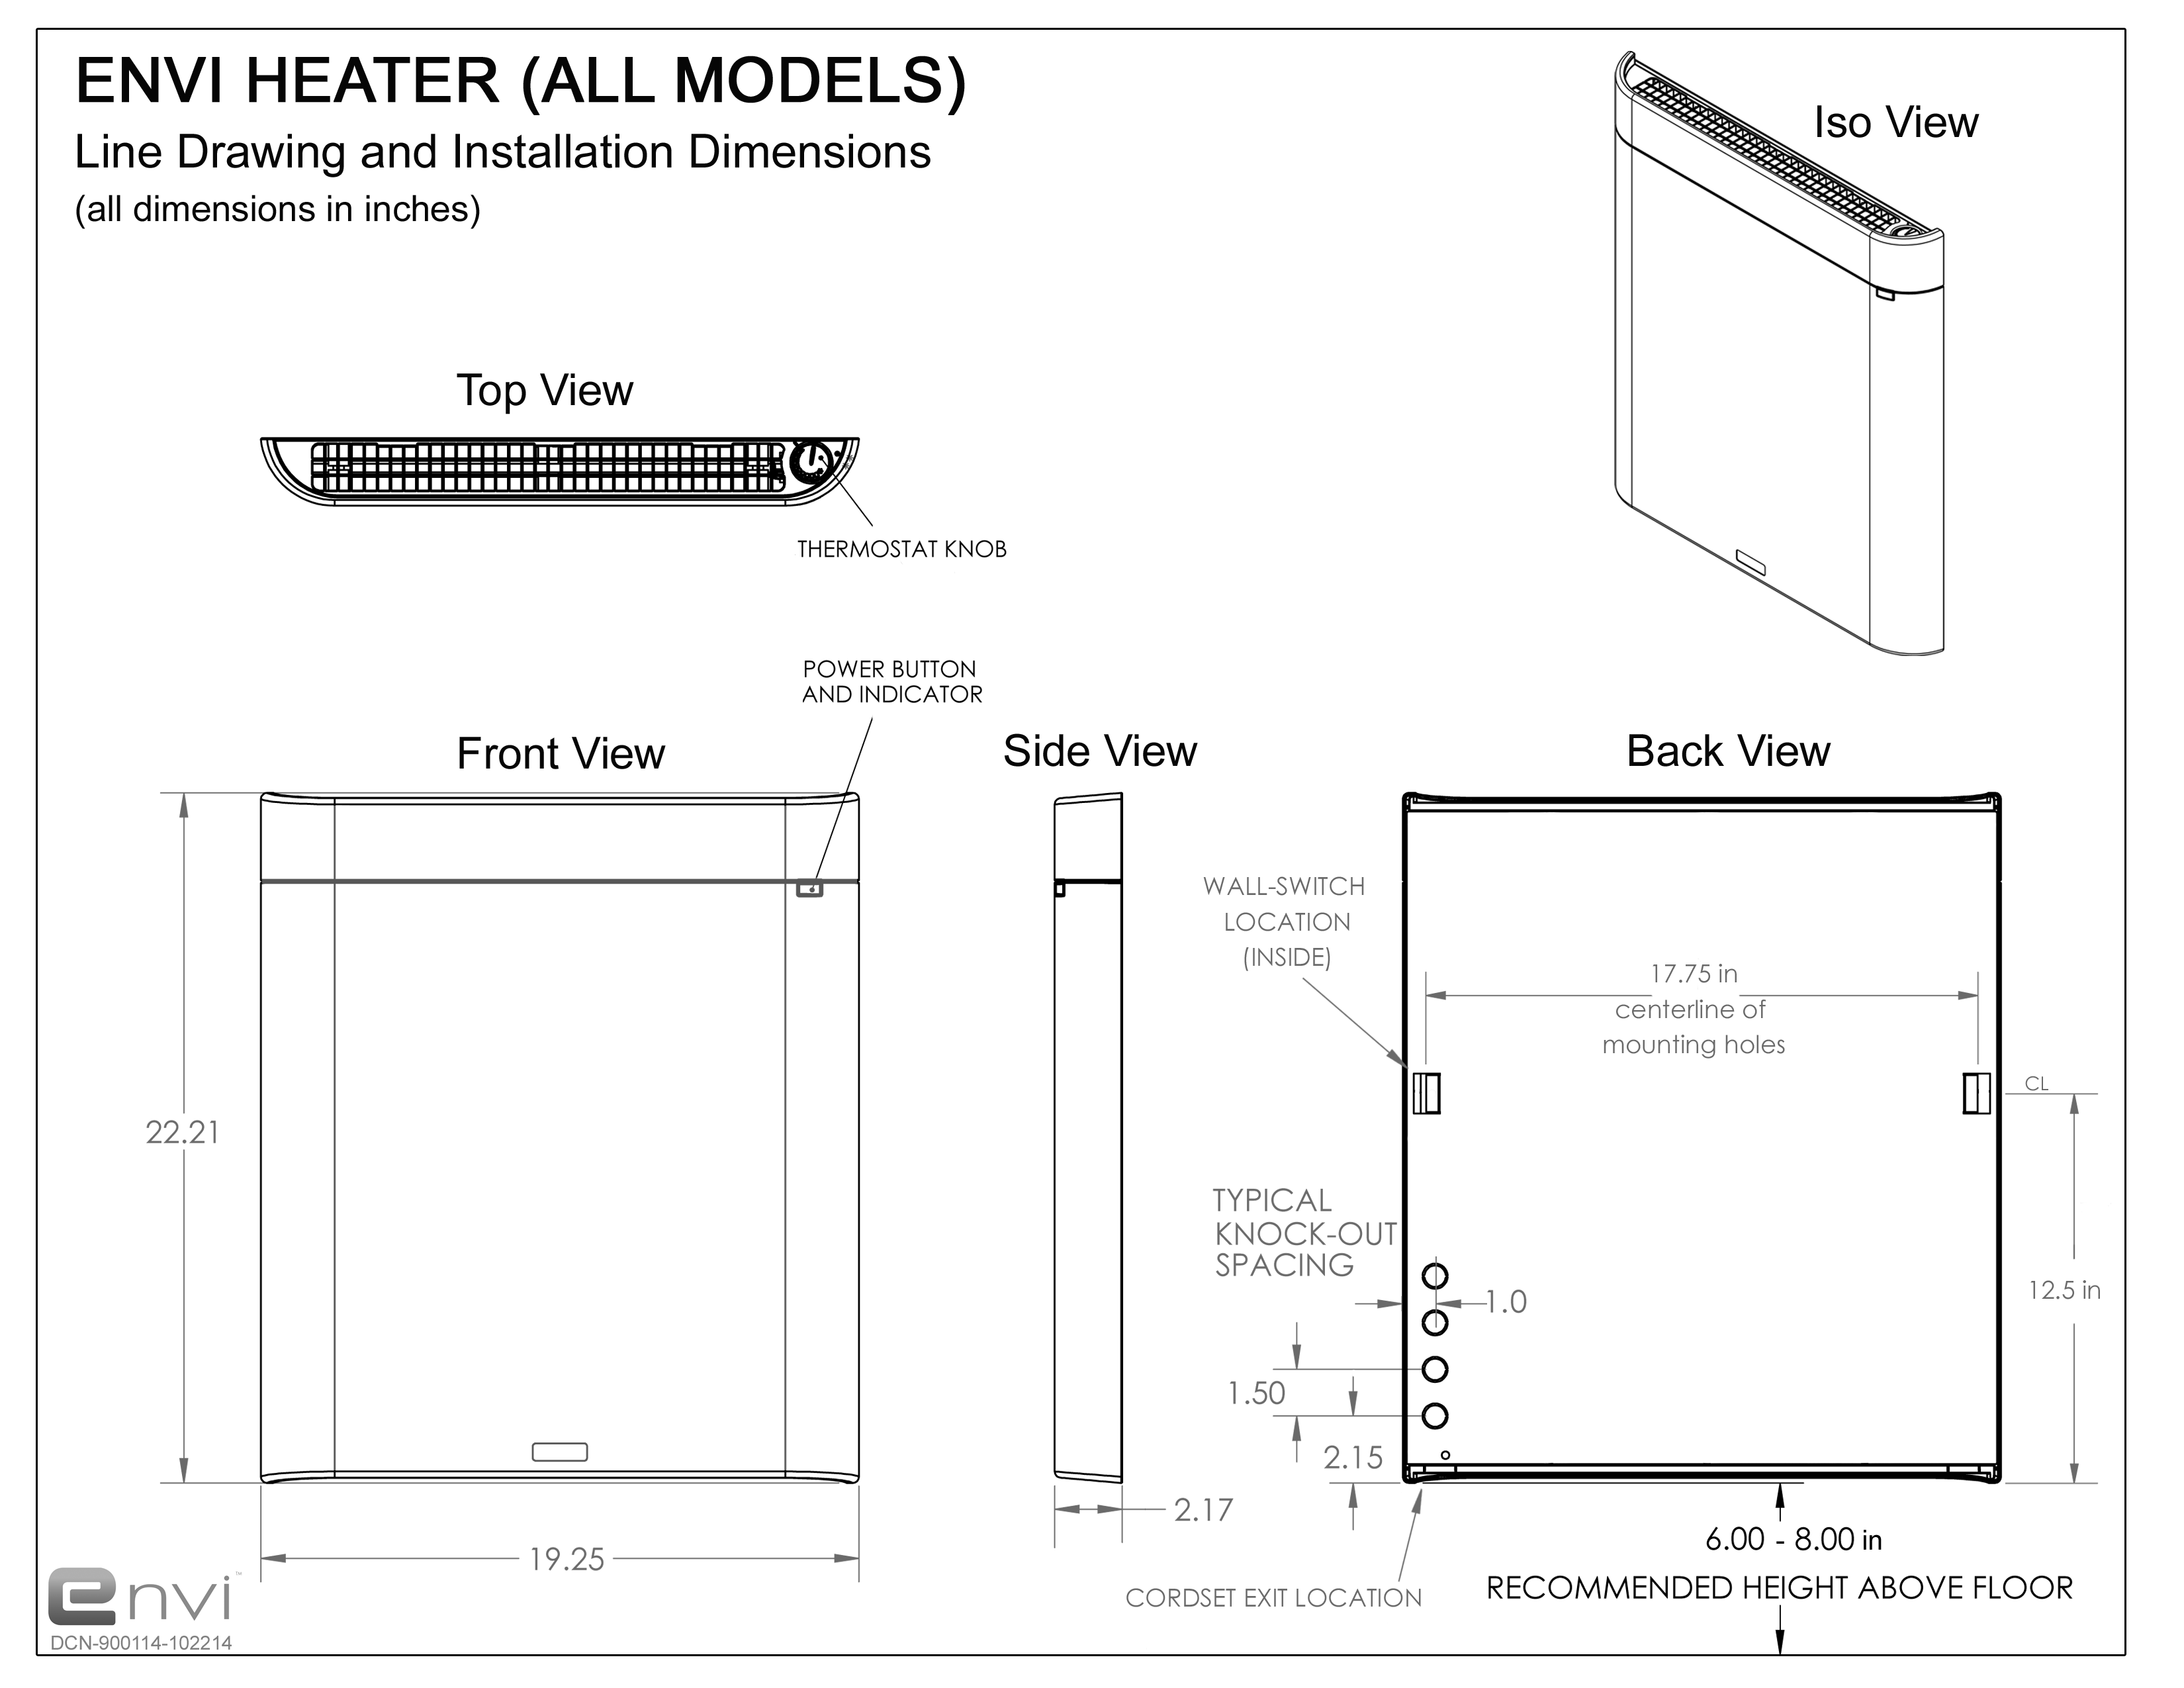 envi-heater-line-drawing-with-dimensions-cut-sheet.png